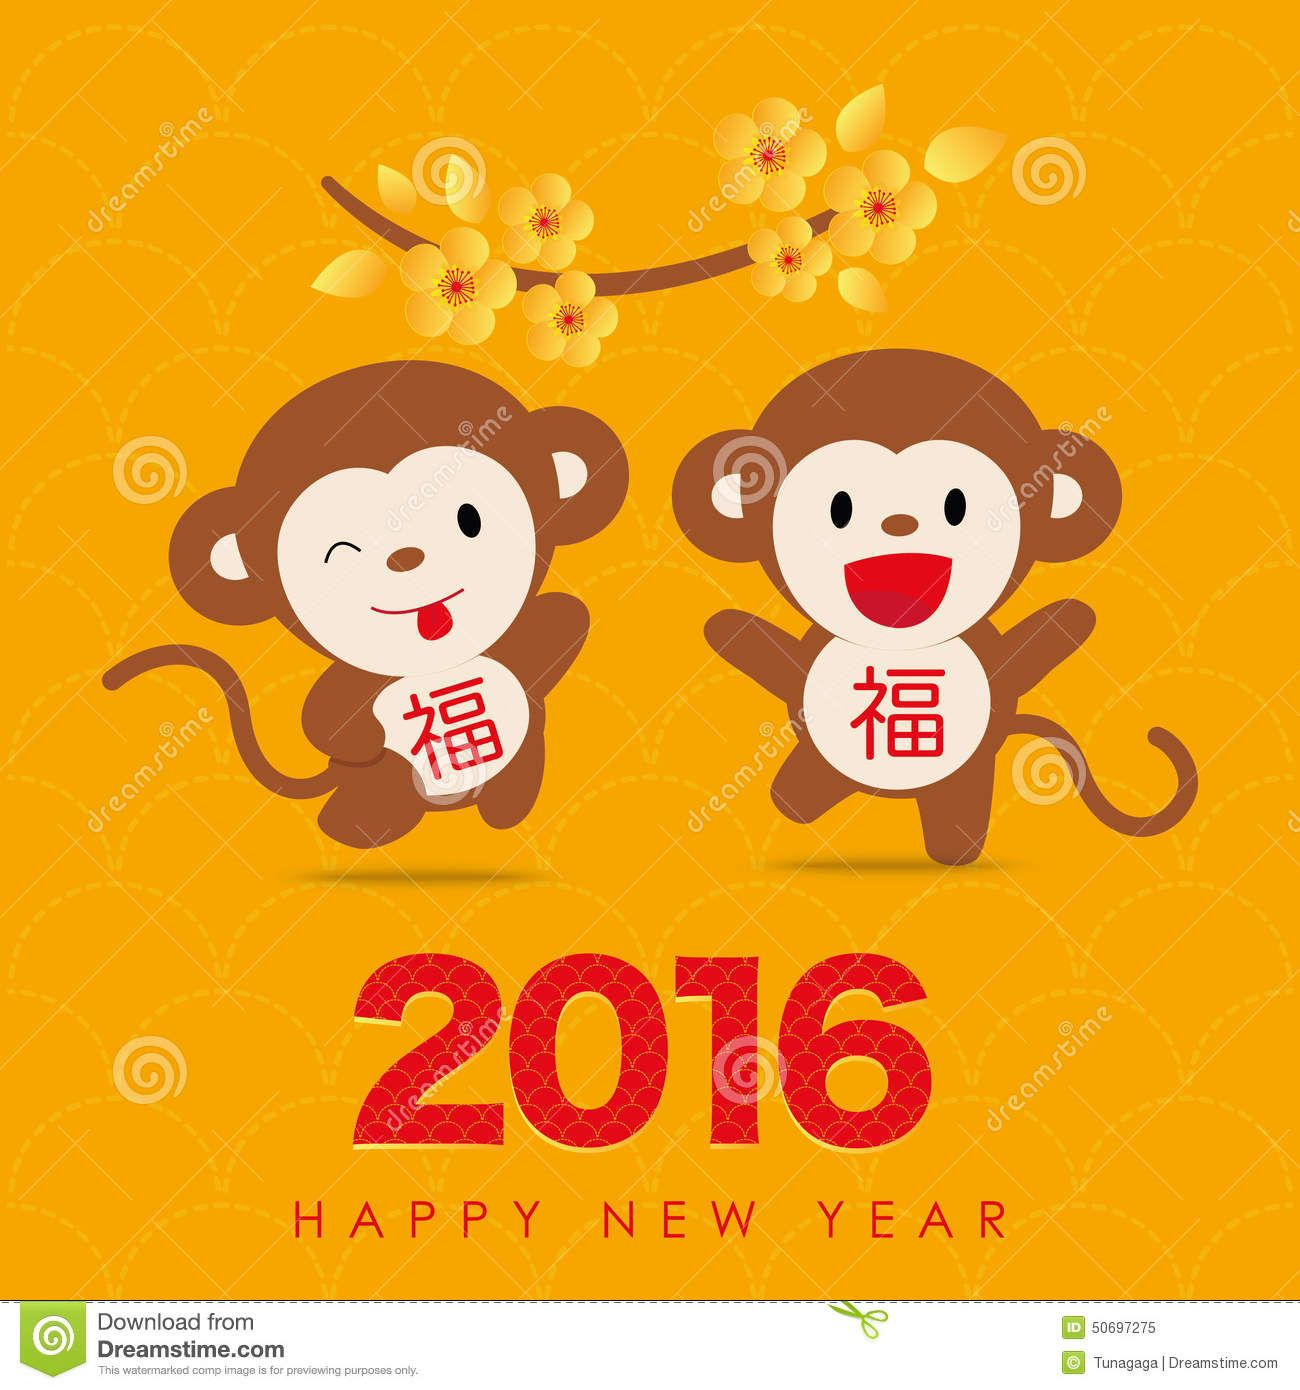 2016 chinese new year greeting card design download from over 2016 chinese new year greeting card design download from over 35 million high quality kristyandbryce Choice Image